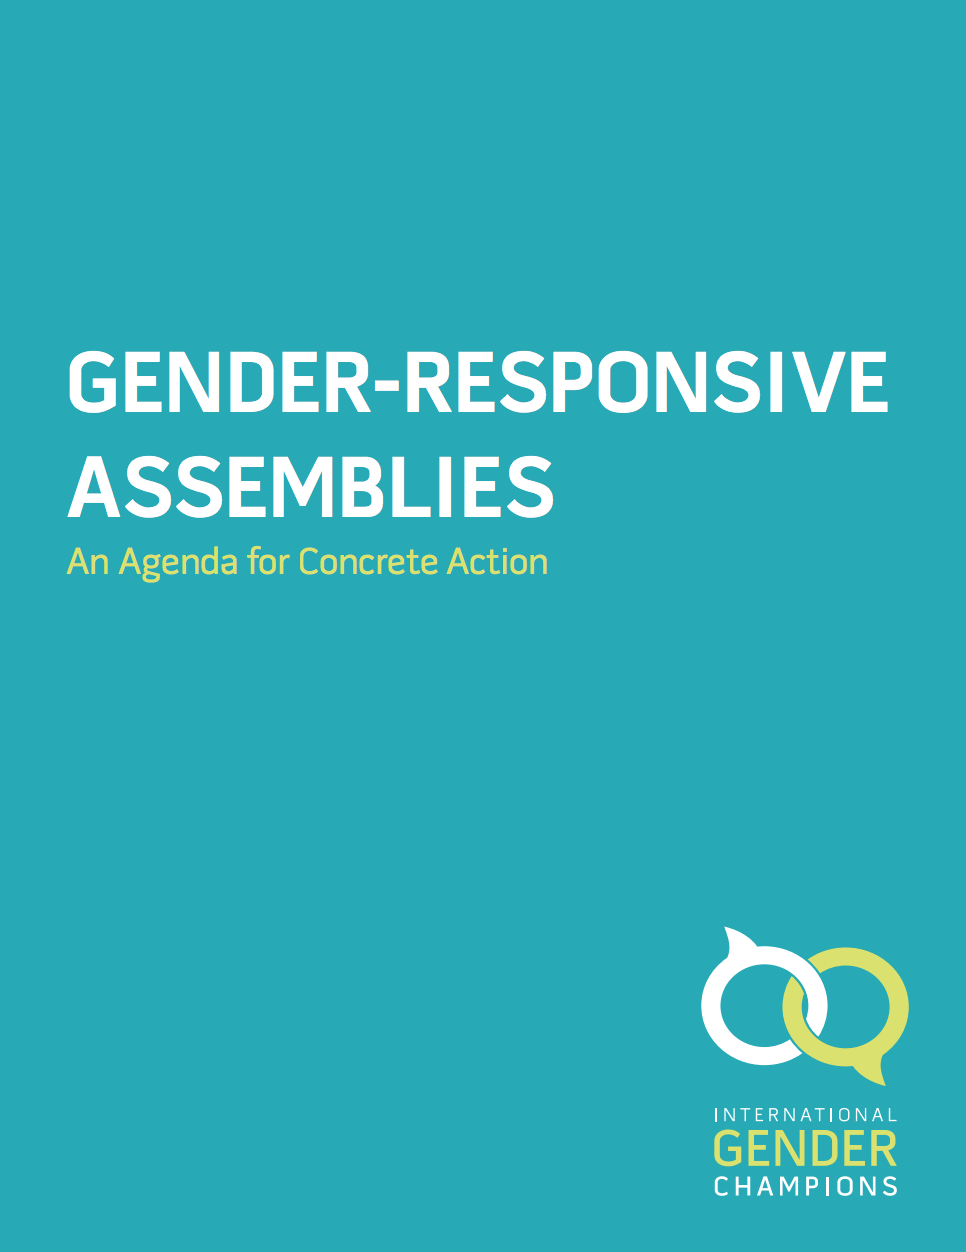 Gender-Responsive Assemblies: An agenda for concrete action